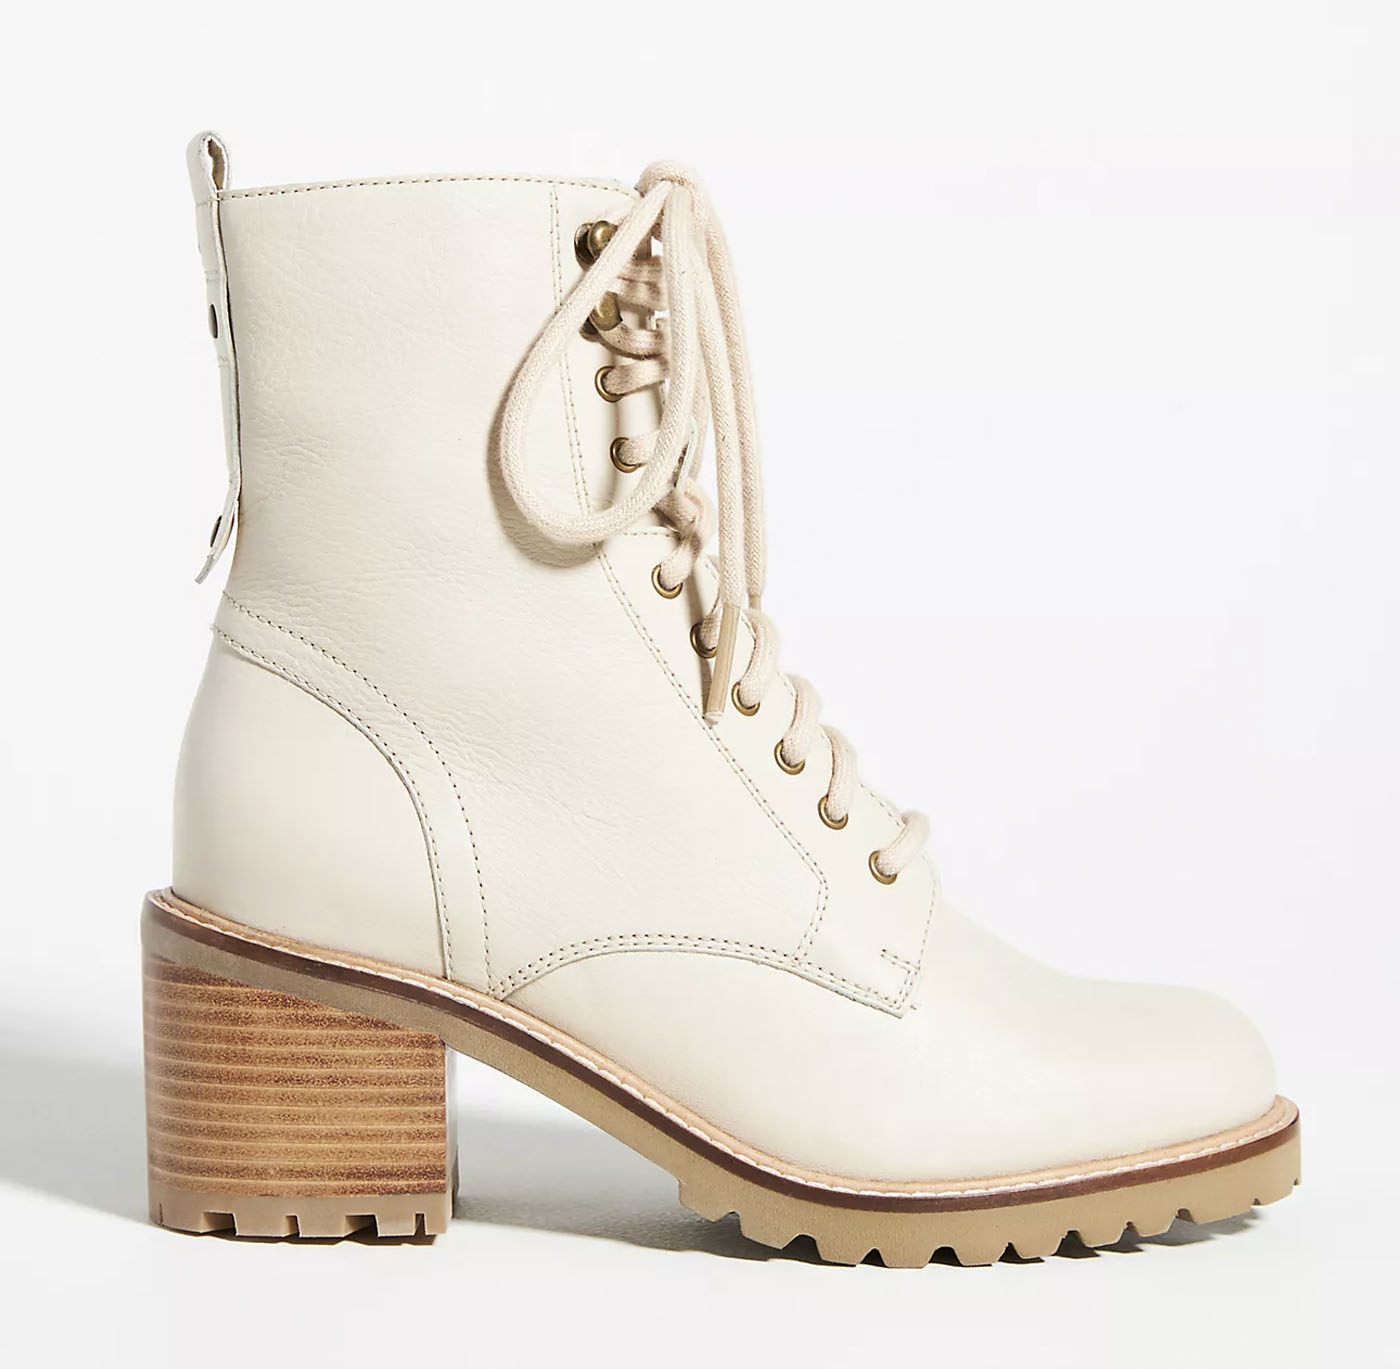 Seychelles Irresistible Lace-Up Boots